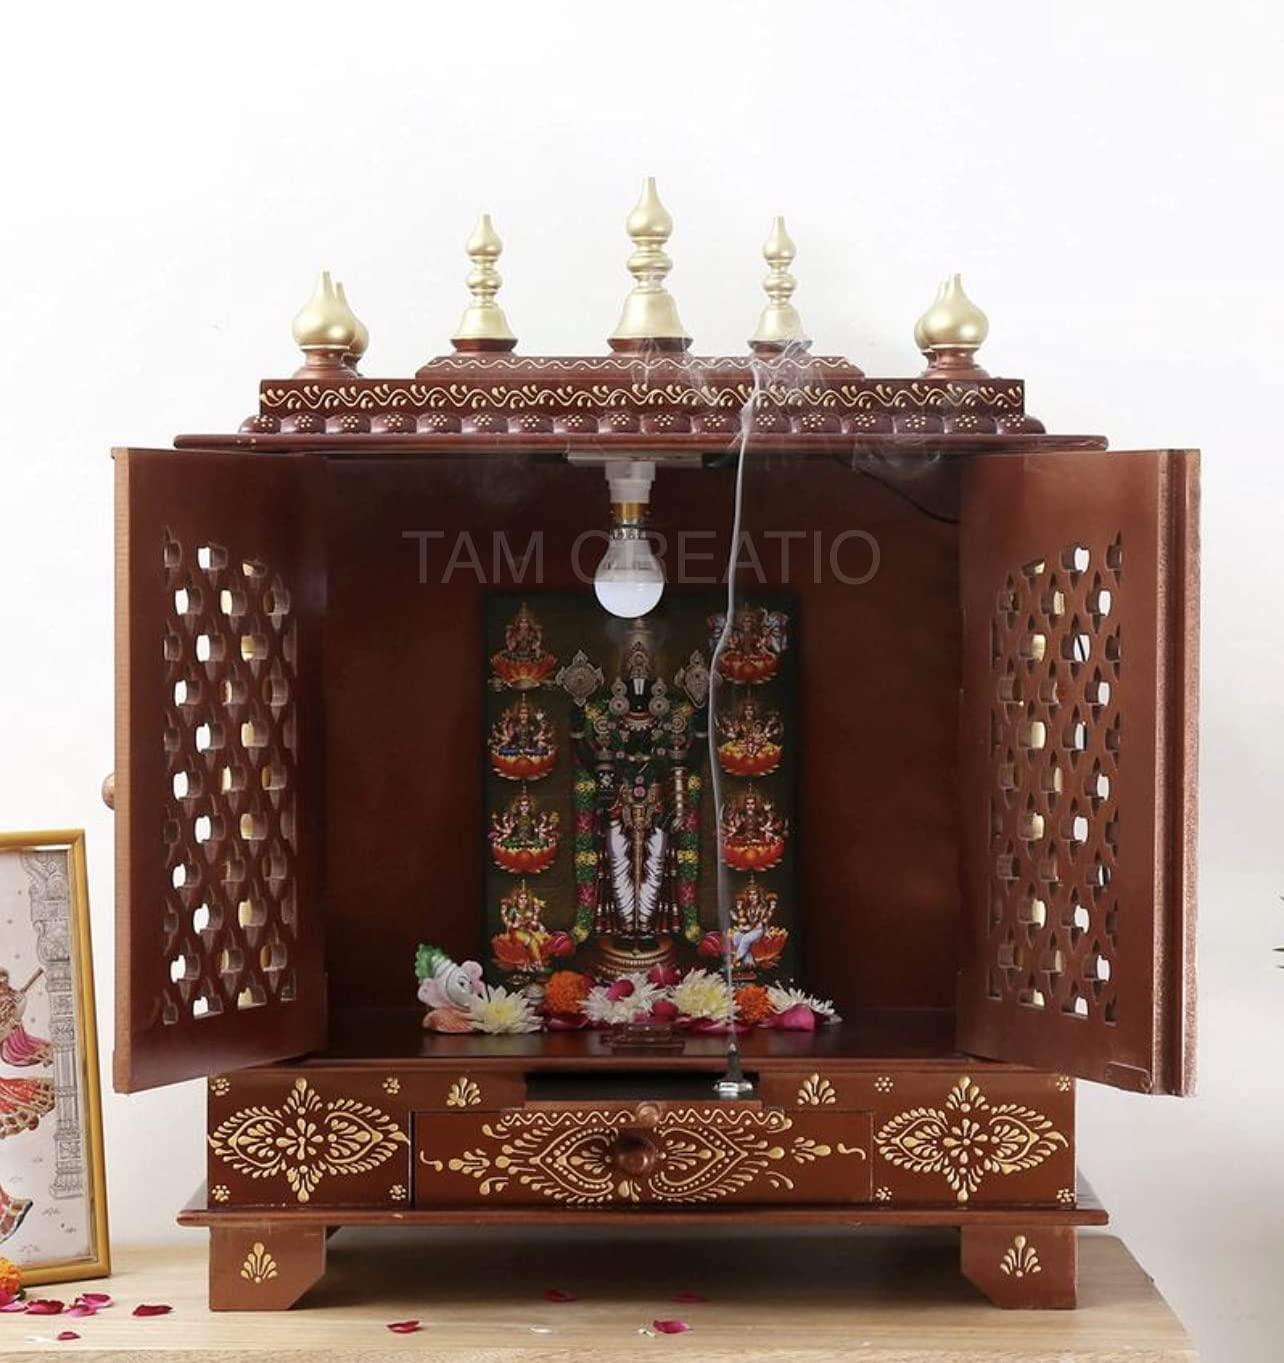 TAM Creatio Wooden Pooja Mandir |Indian| |Hindu| |Decoration| |Puja| |Cabinet| |Temple| |Bhagwan| |Stand| |Mandapam| |Wall| |Hanging| Decor for Home in USA (24x12x30 Inches) (24X12x30 Inches)